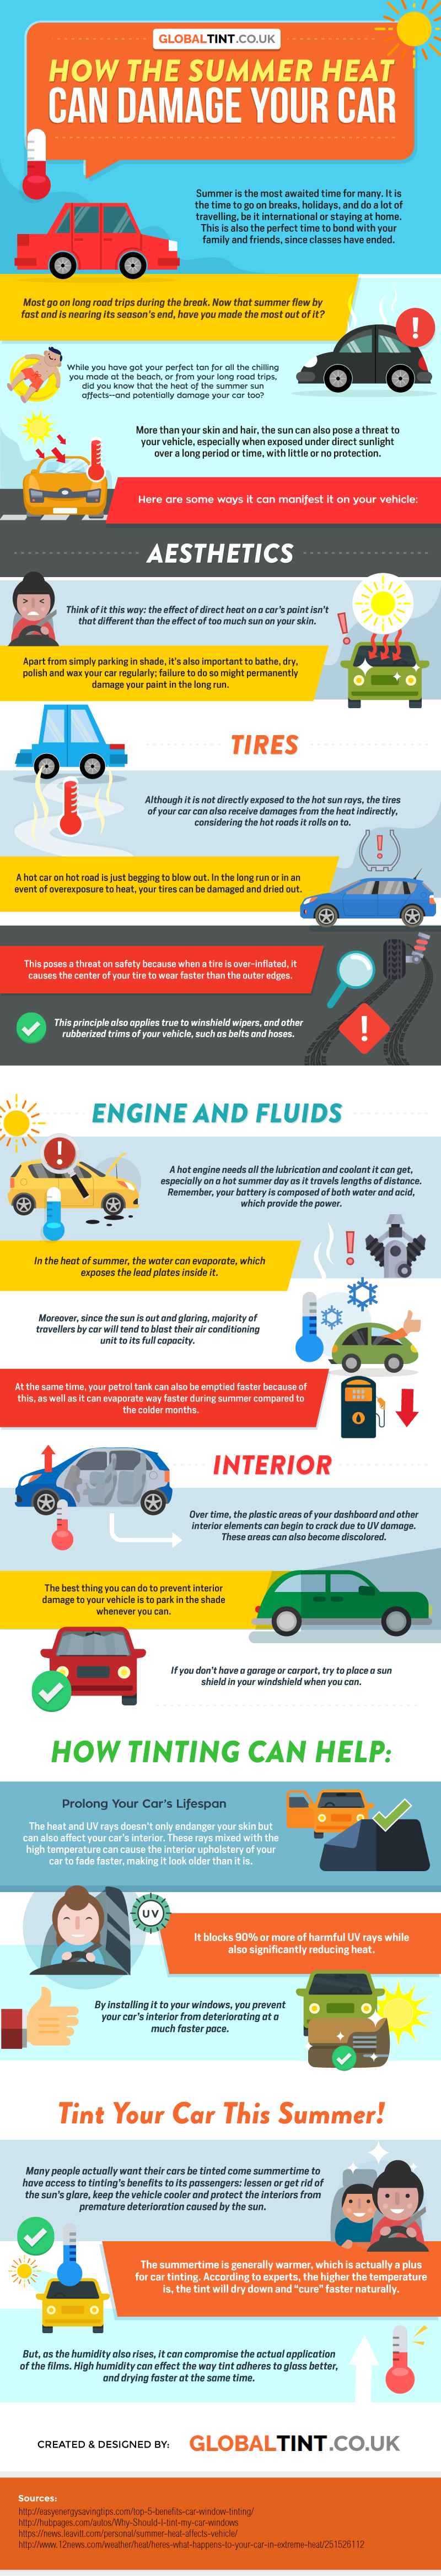 How The Summer Heat Can Damage Your Car